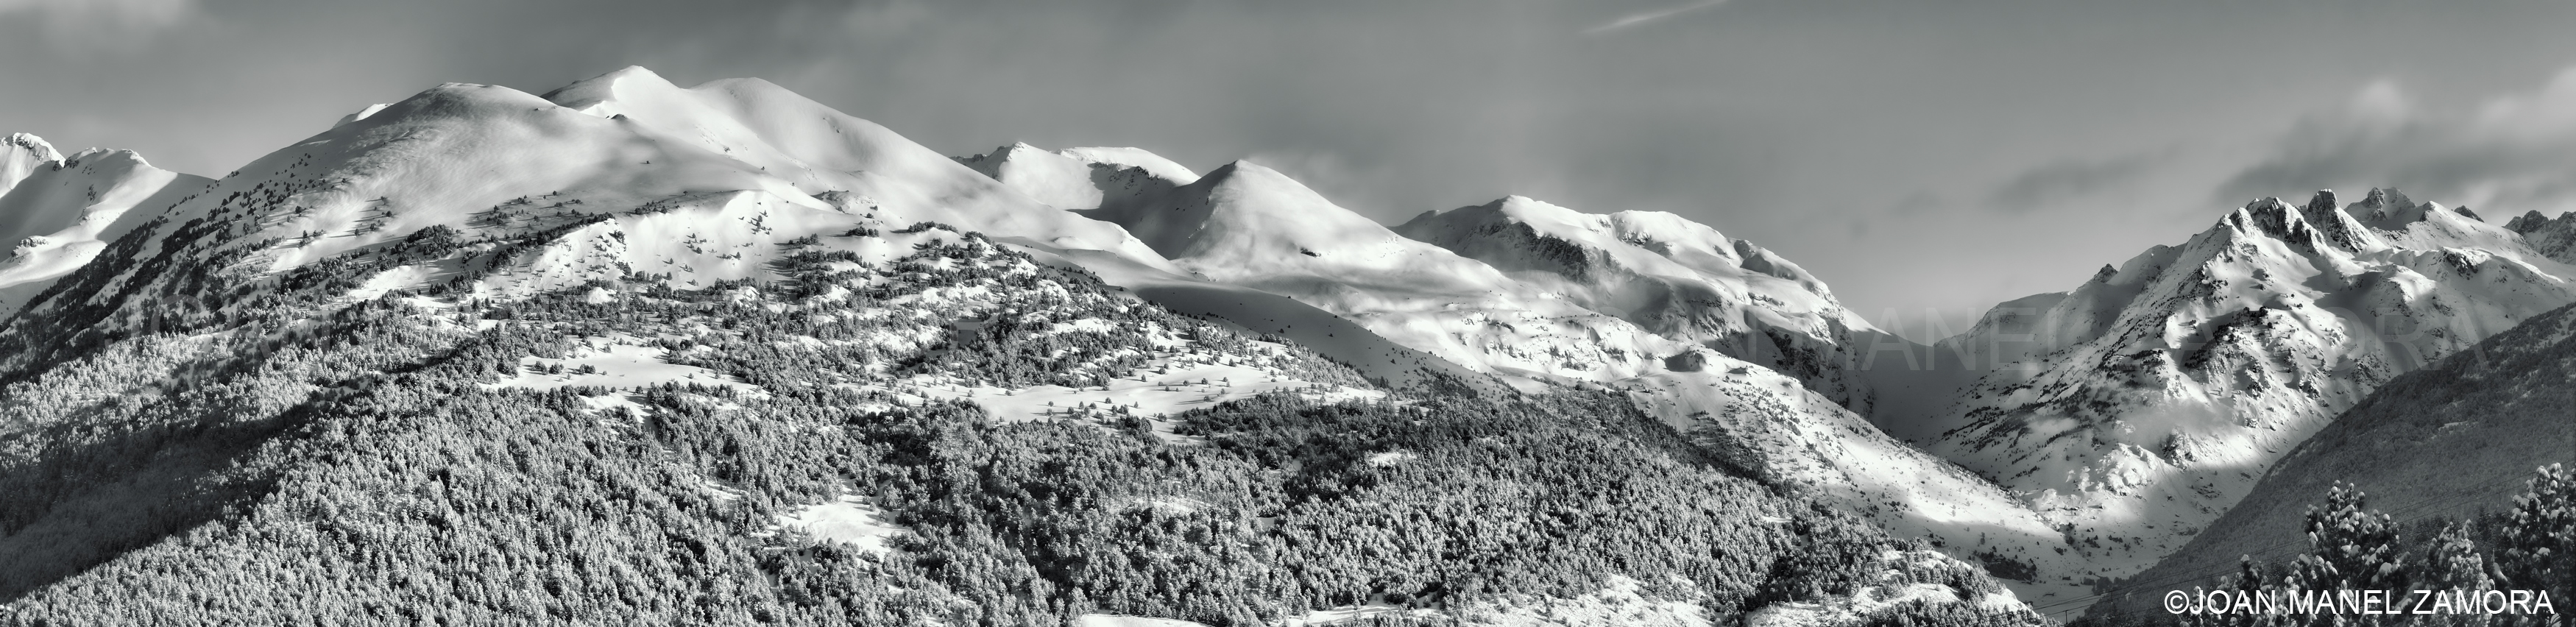 06128 WINTER MOUNTAIN-FINE ART